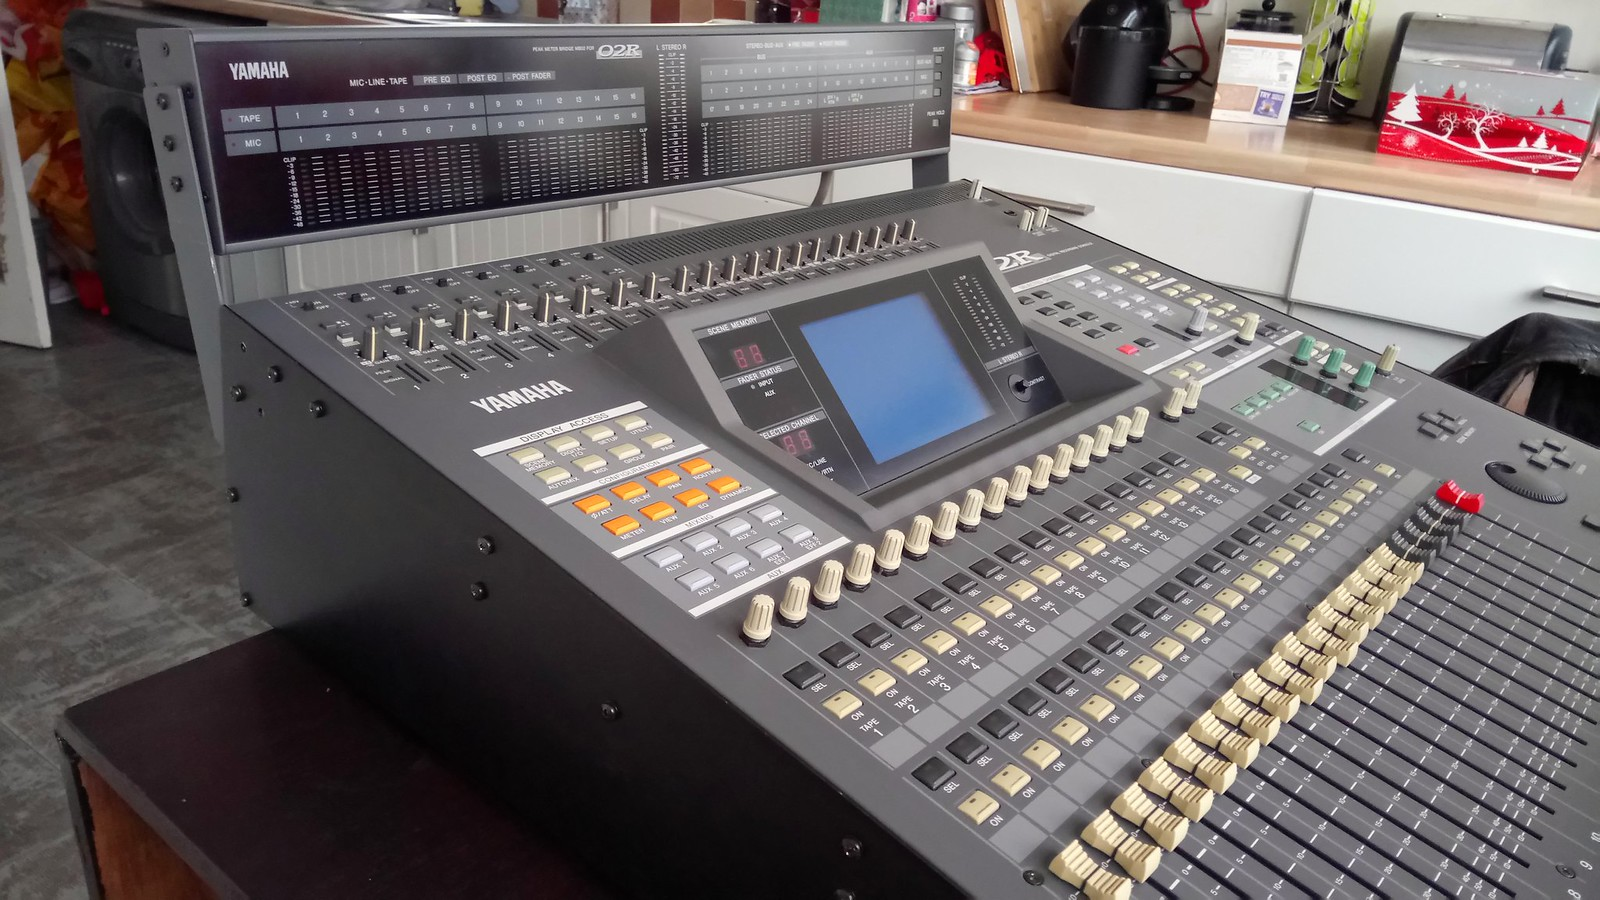 SOS Forum • Yamaha 02R digital mixing console